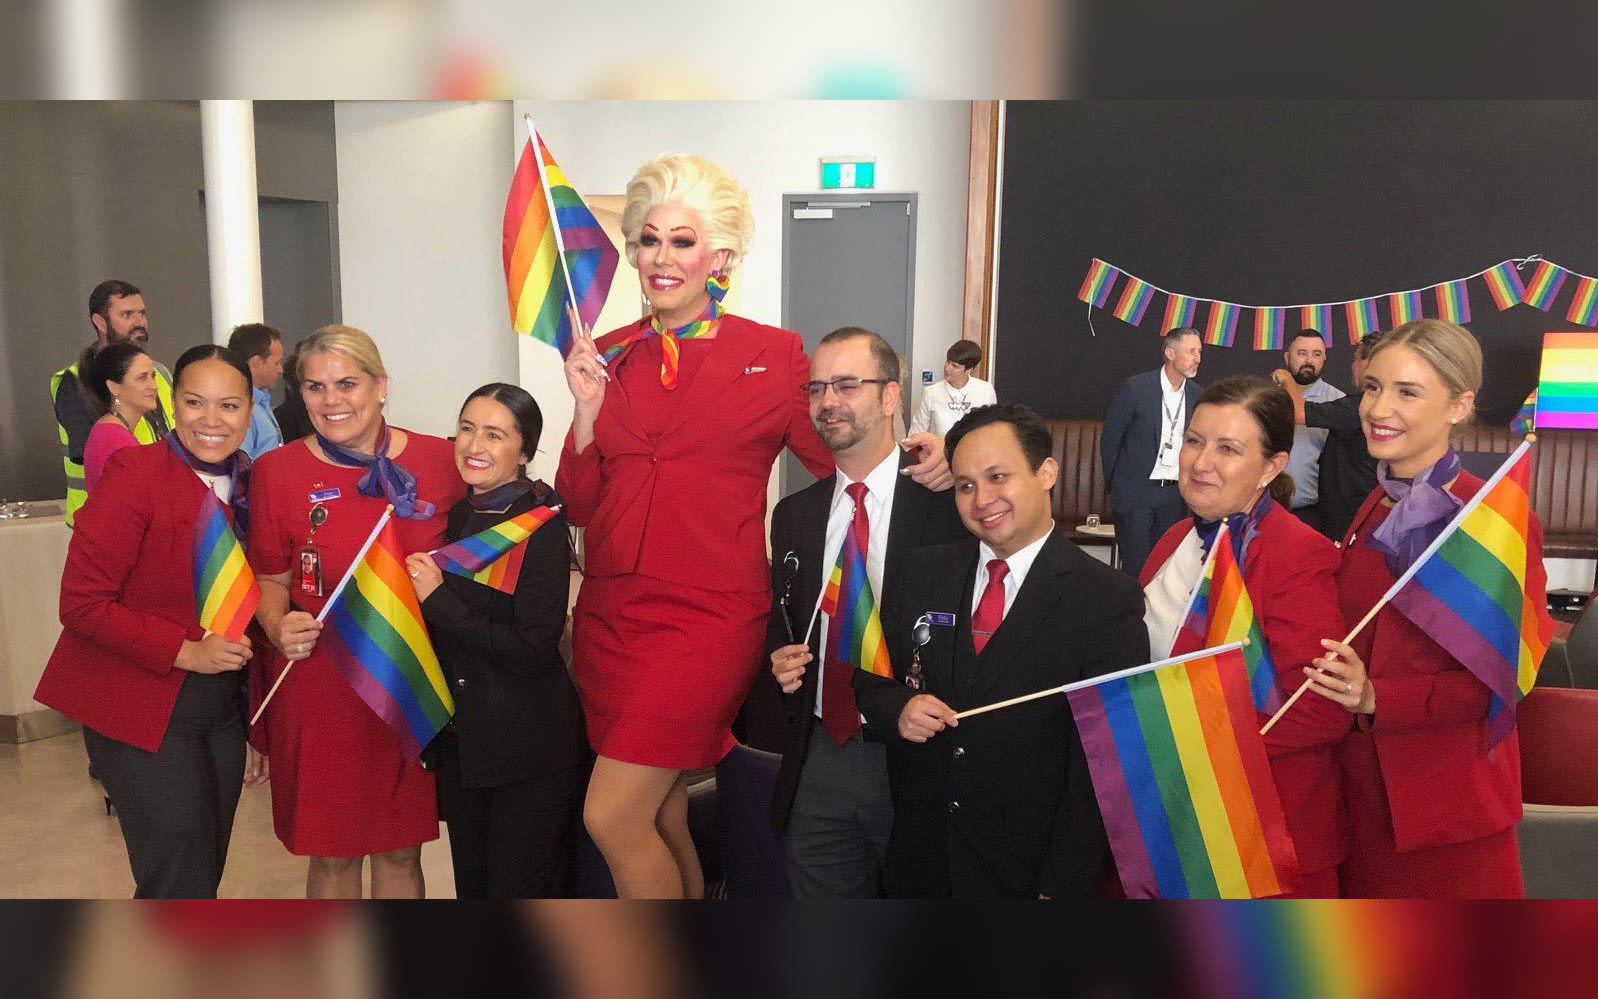 Virgin Australia cabin crew preparing for the Pride Flight